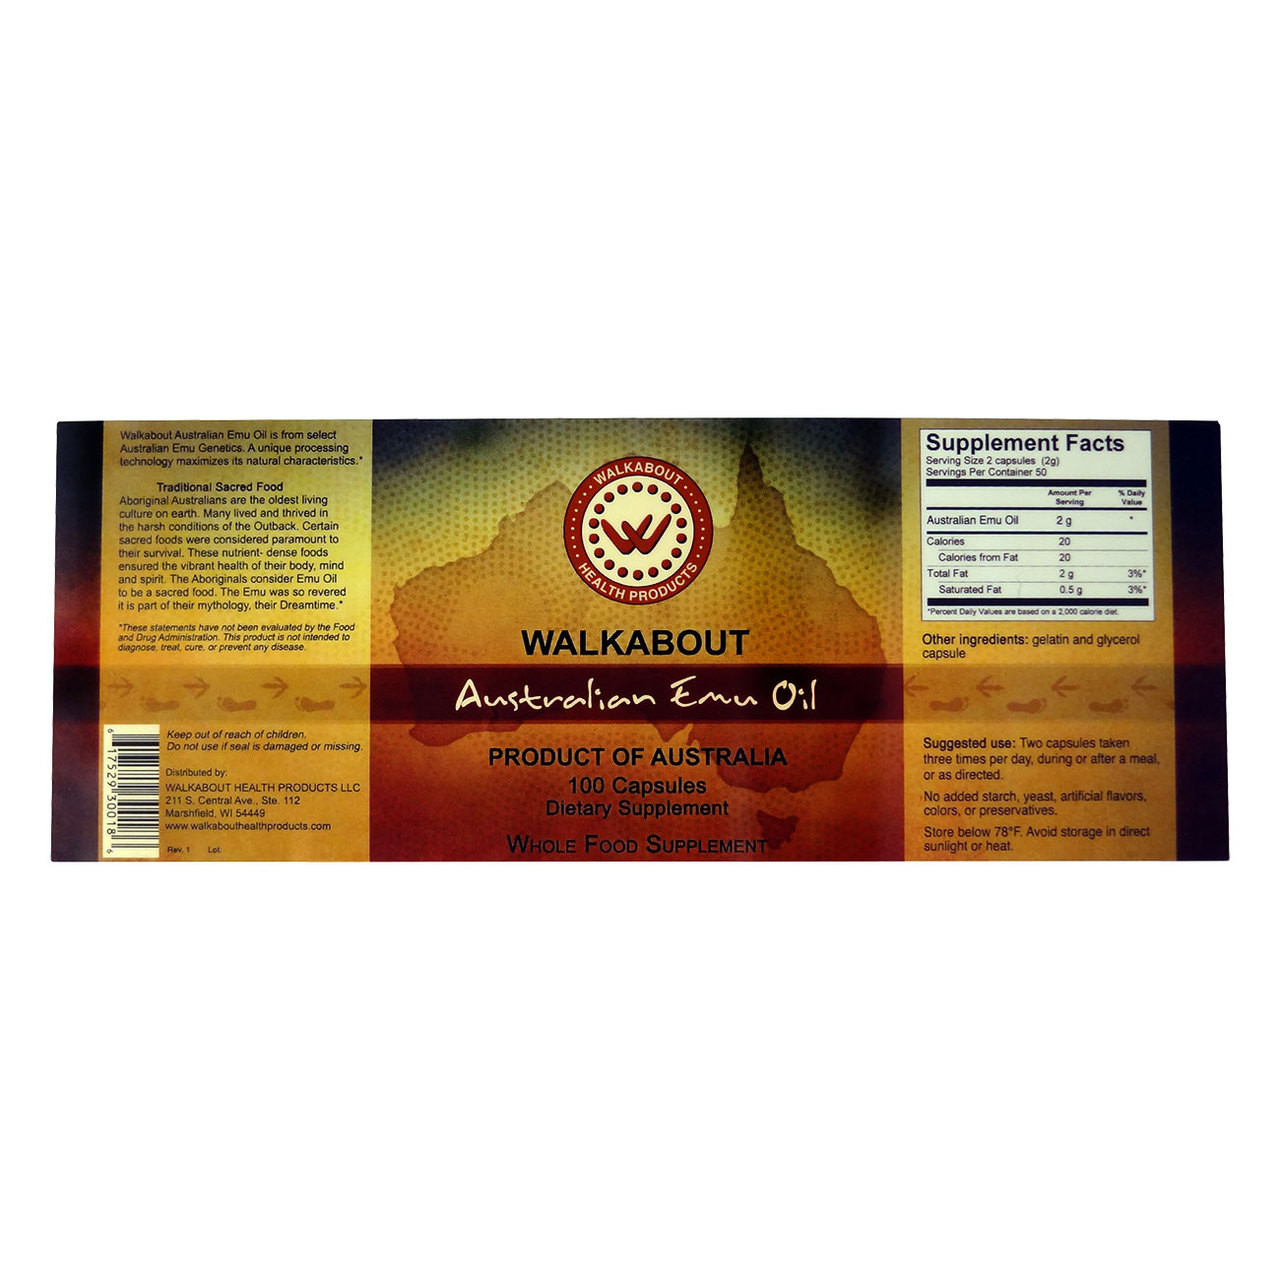 View of entire label of Walkabout 100% Australian Emu Oil Capsules with supplement facts, suggested use and ingredients.